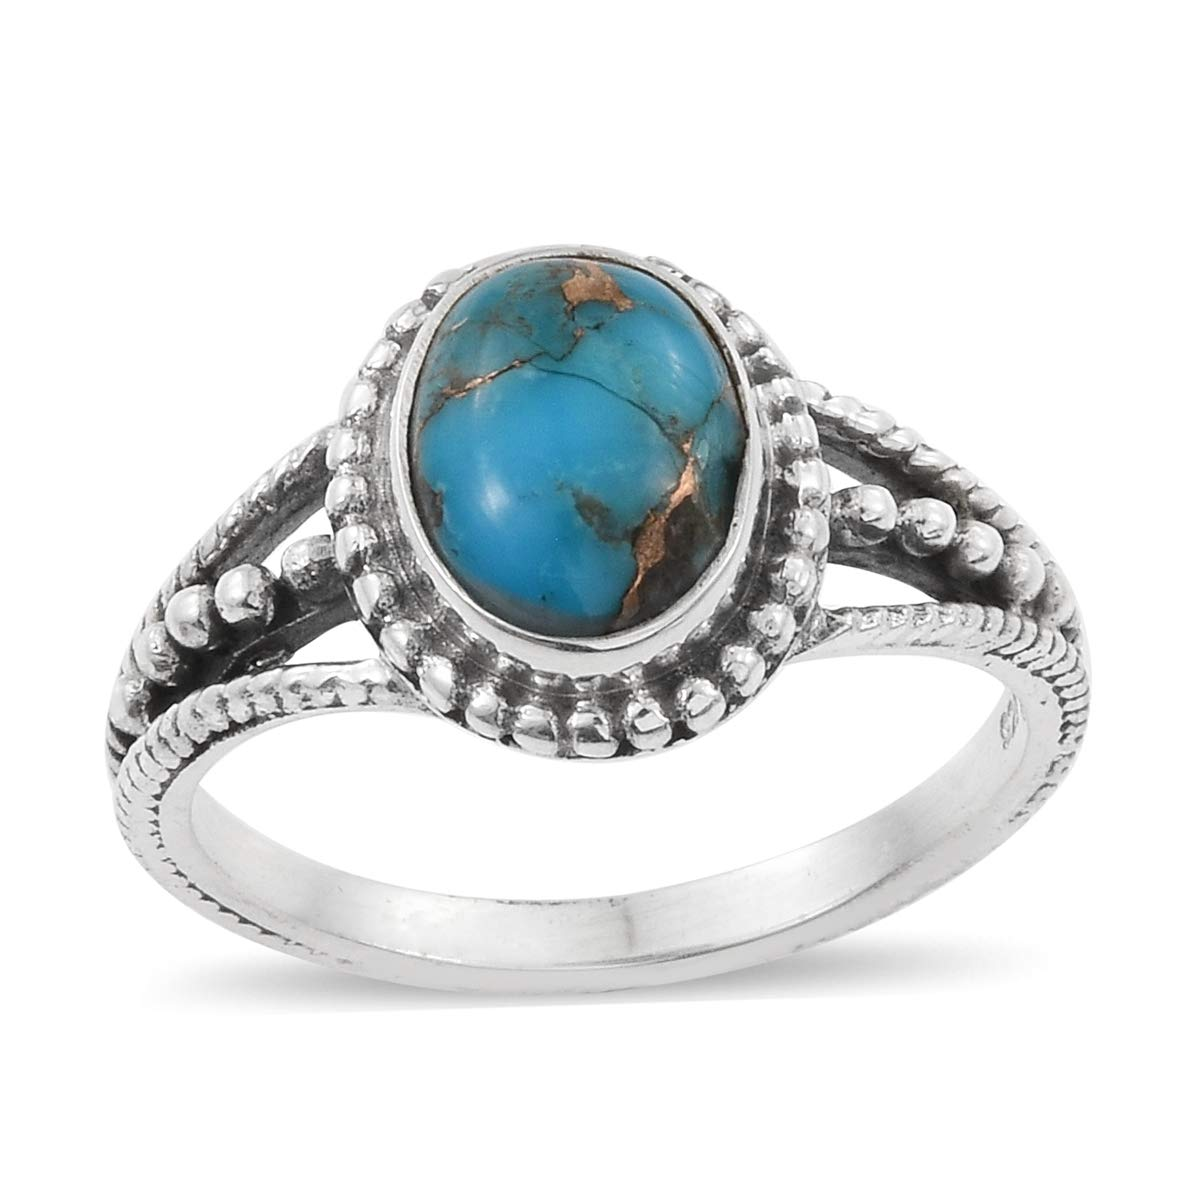 925 Sterling Silver Oval Blue Turquoise Fashion Ring for Women Size 8 Cttw 2.2